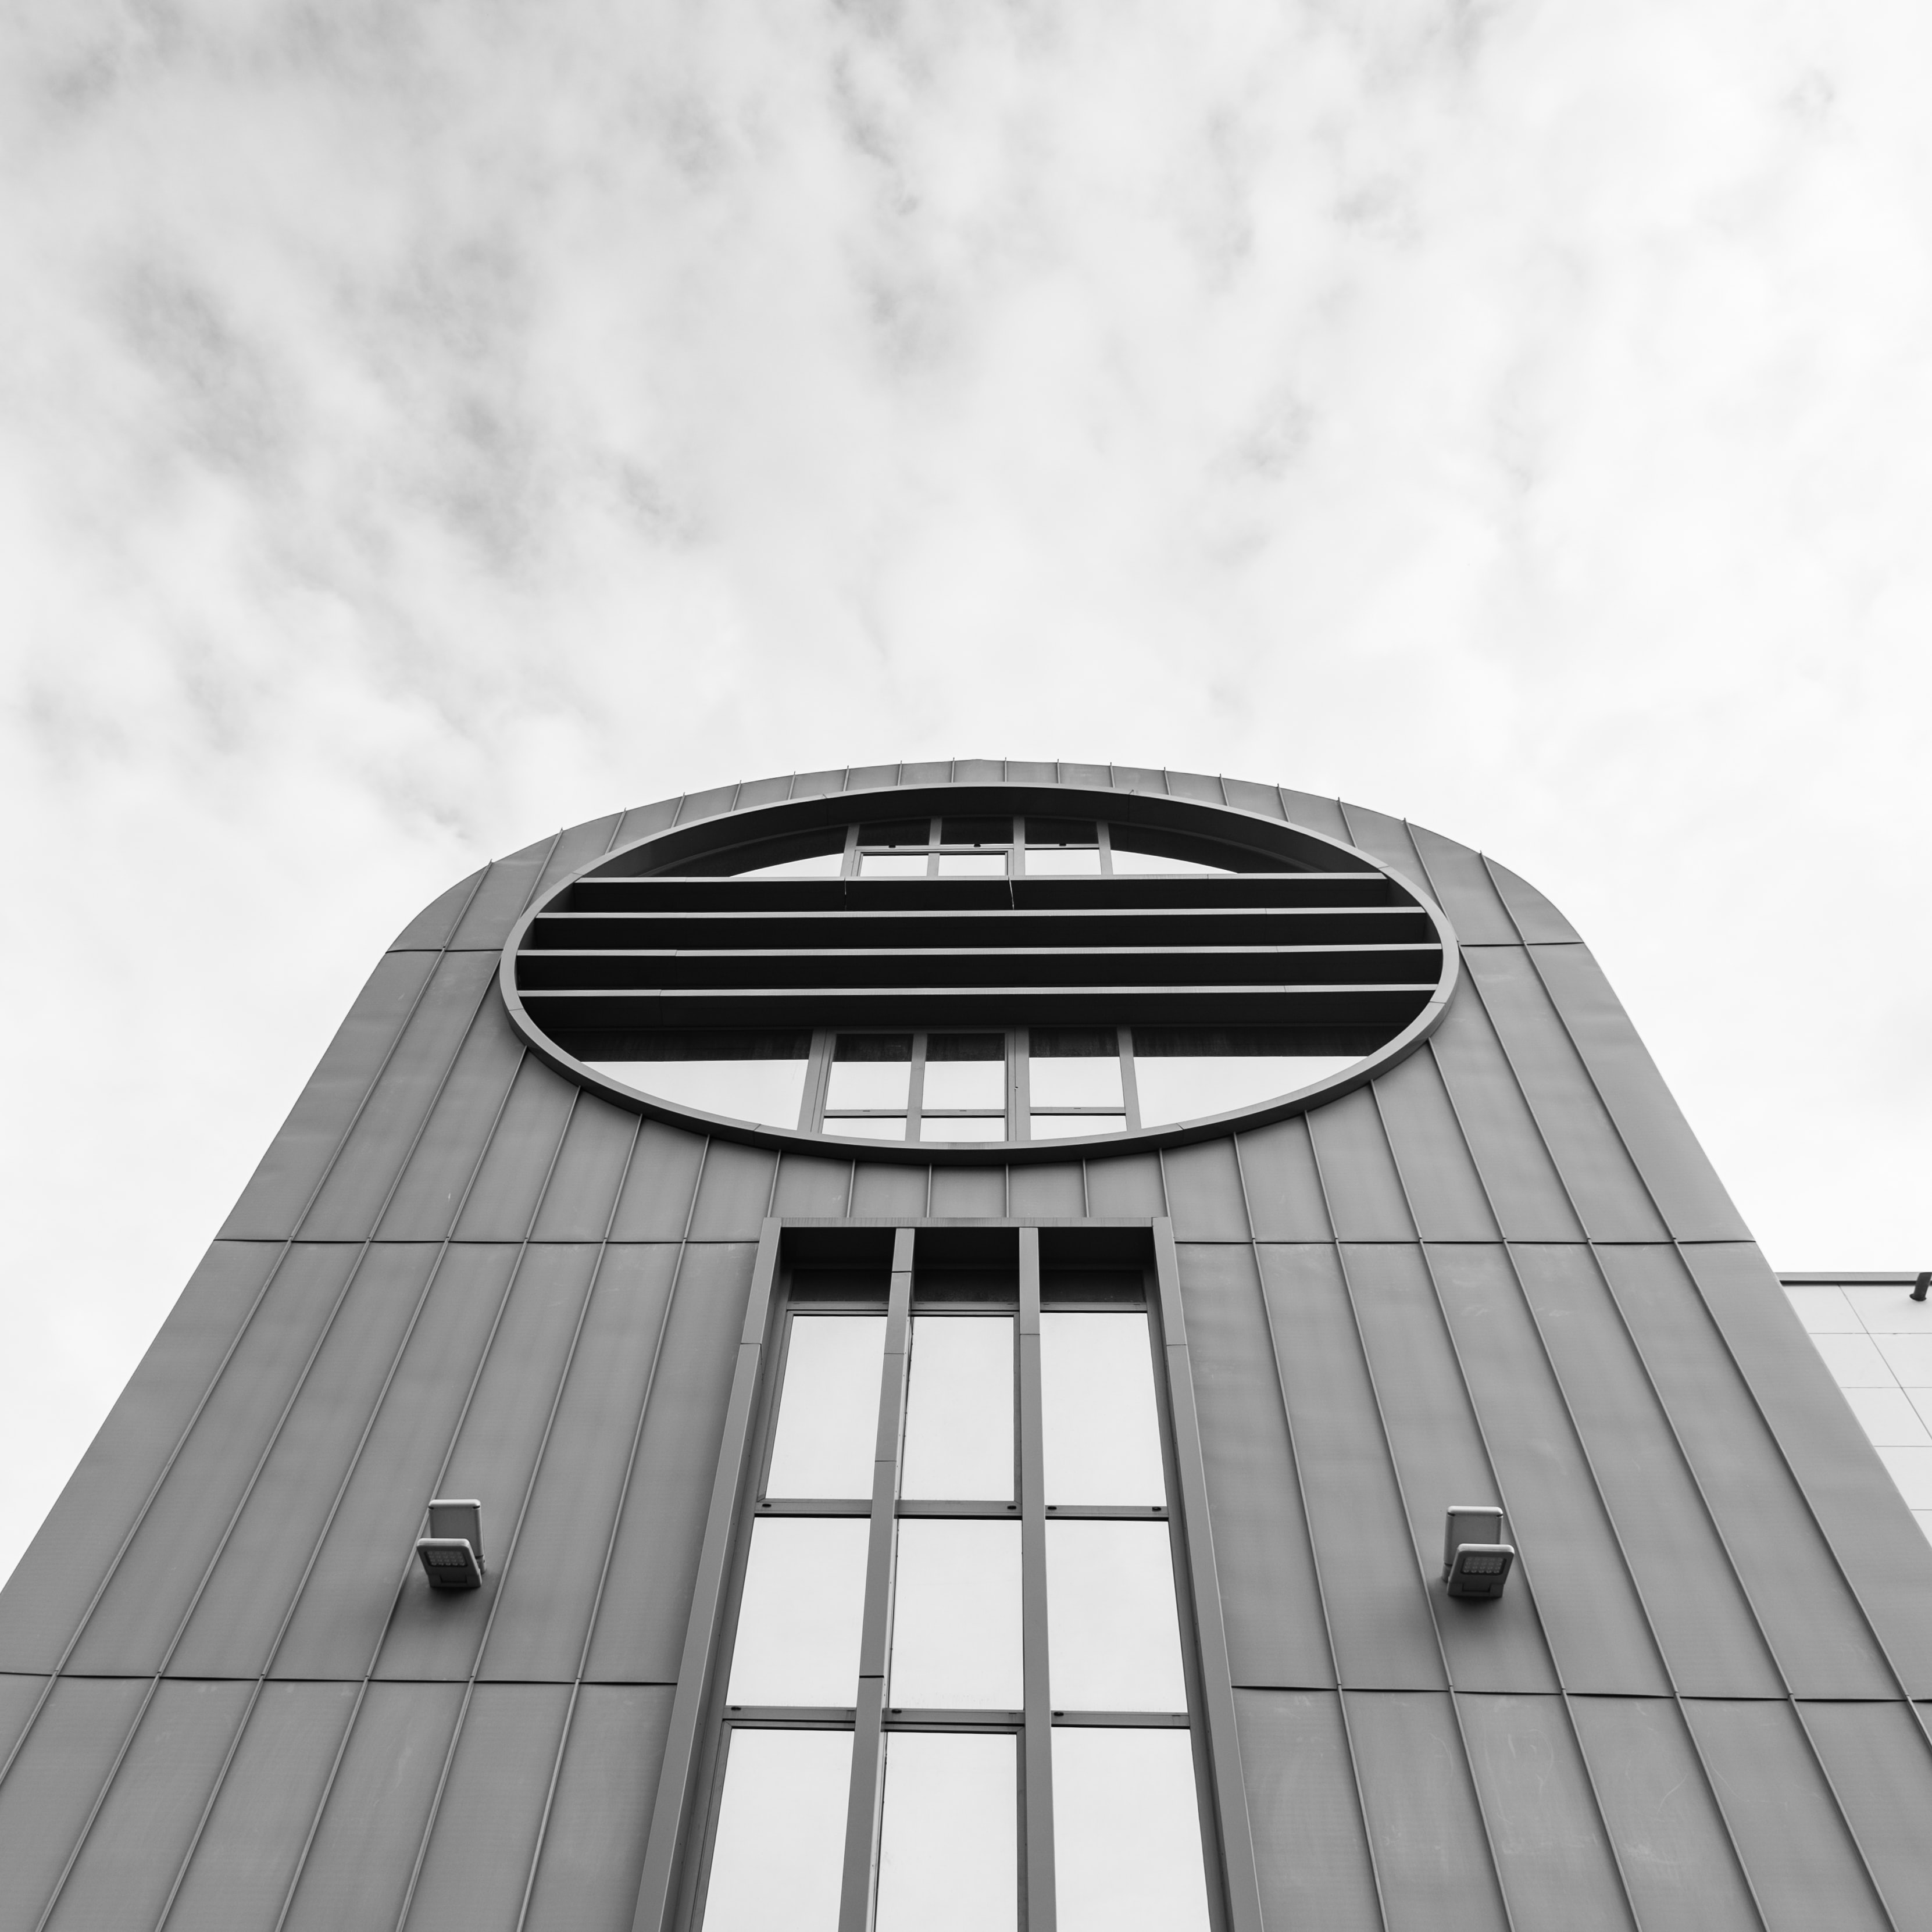 low-angle photography of concrete building under cloudy sky